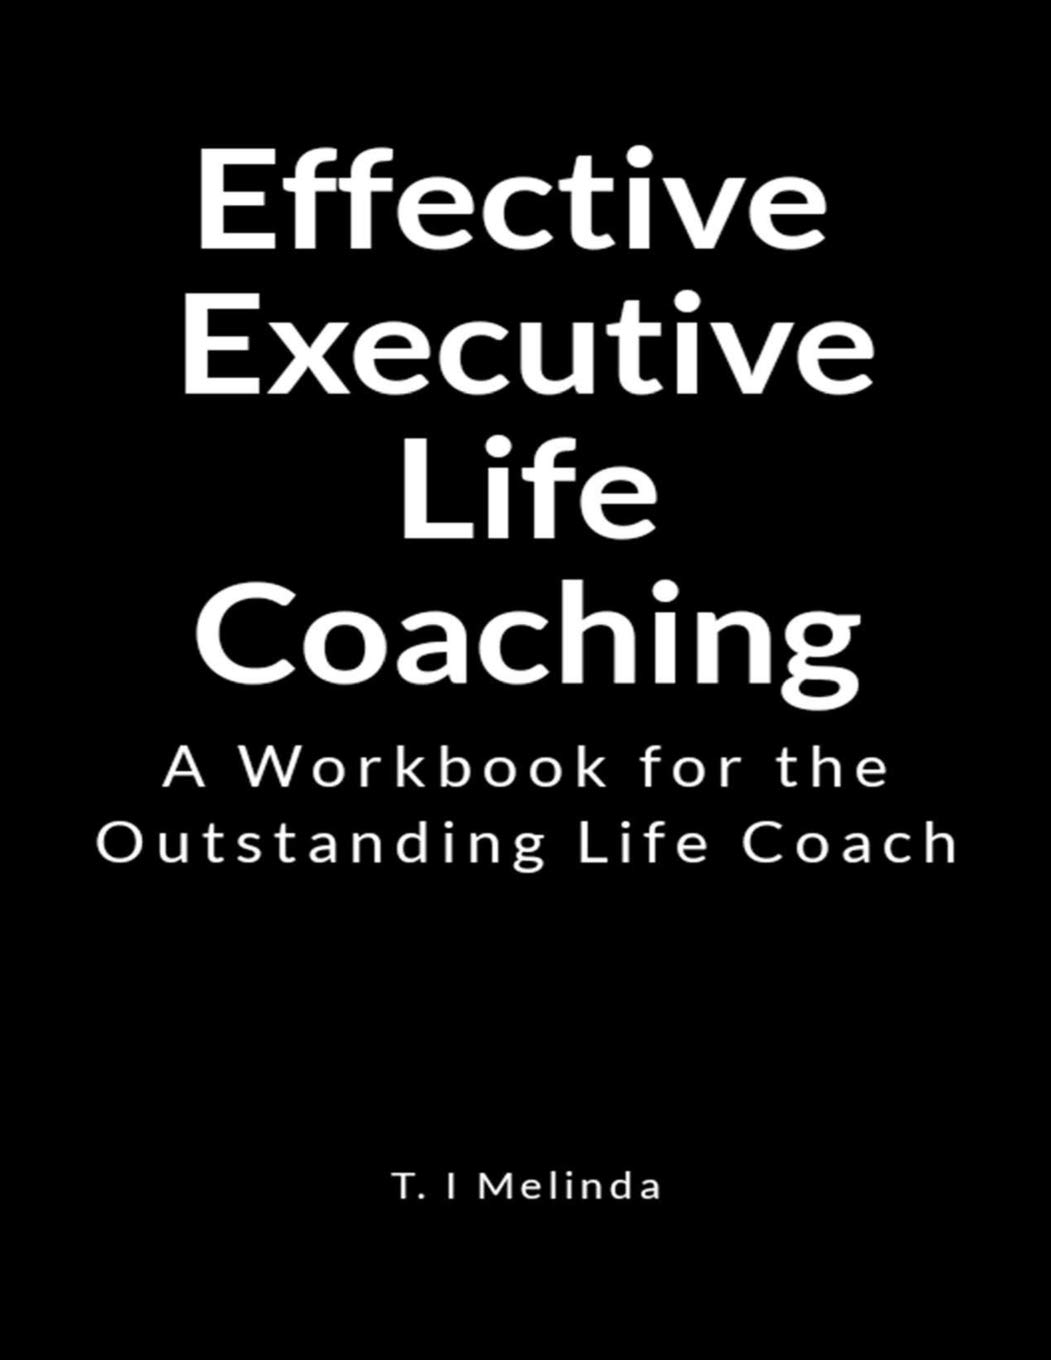 Whats The Difference Between Executive And Life Coaching >> Effective Executive Life Coaching A Workbook For The Outstanding